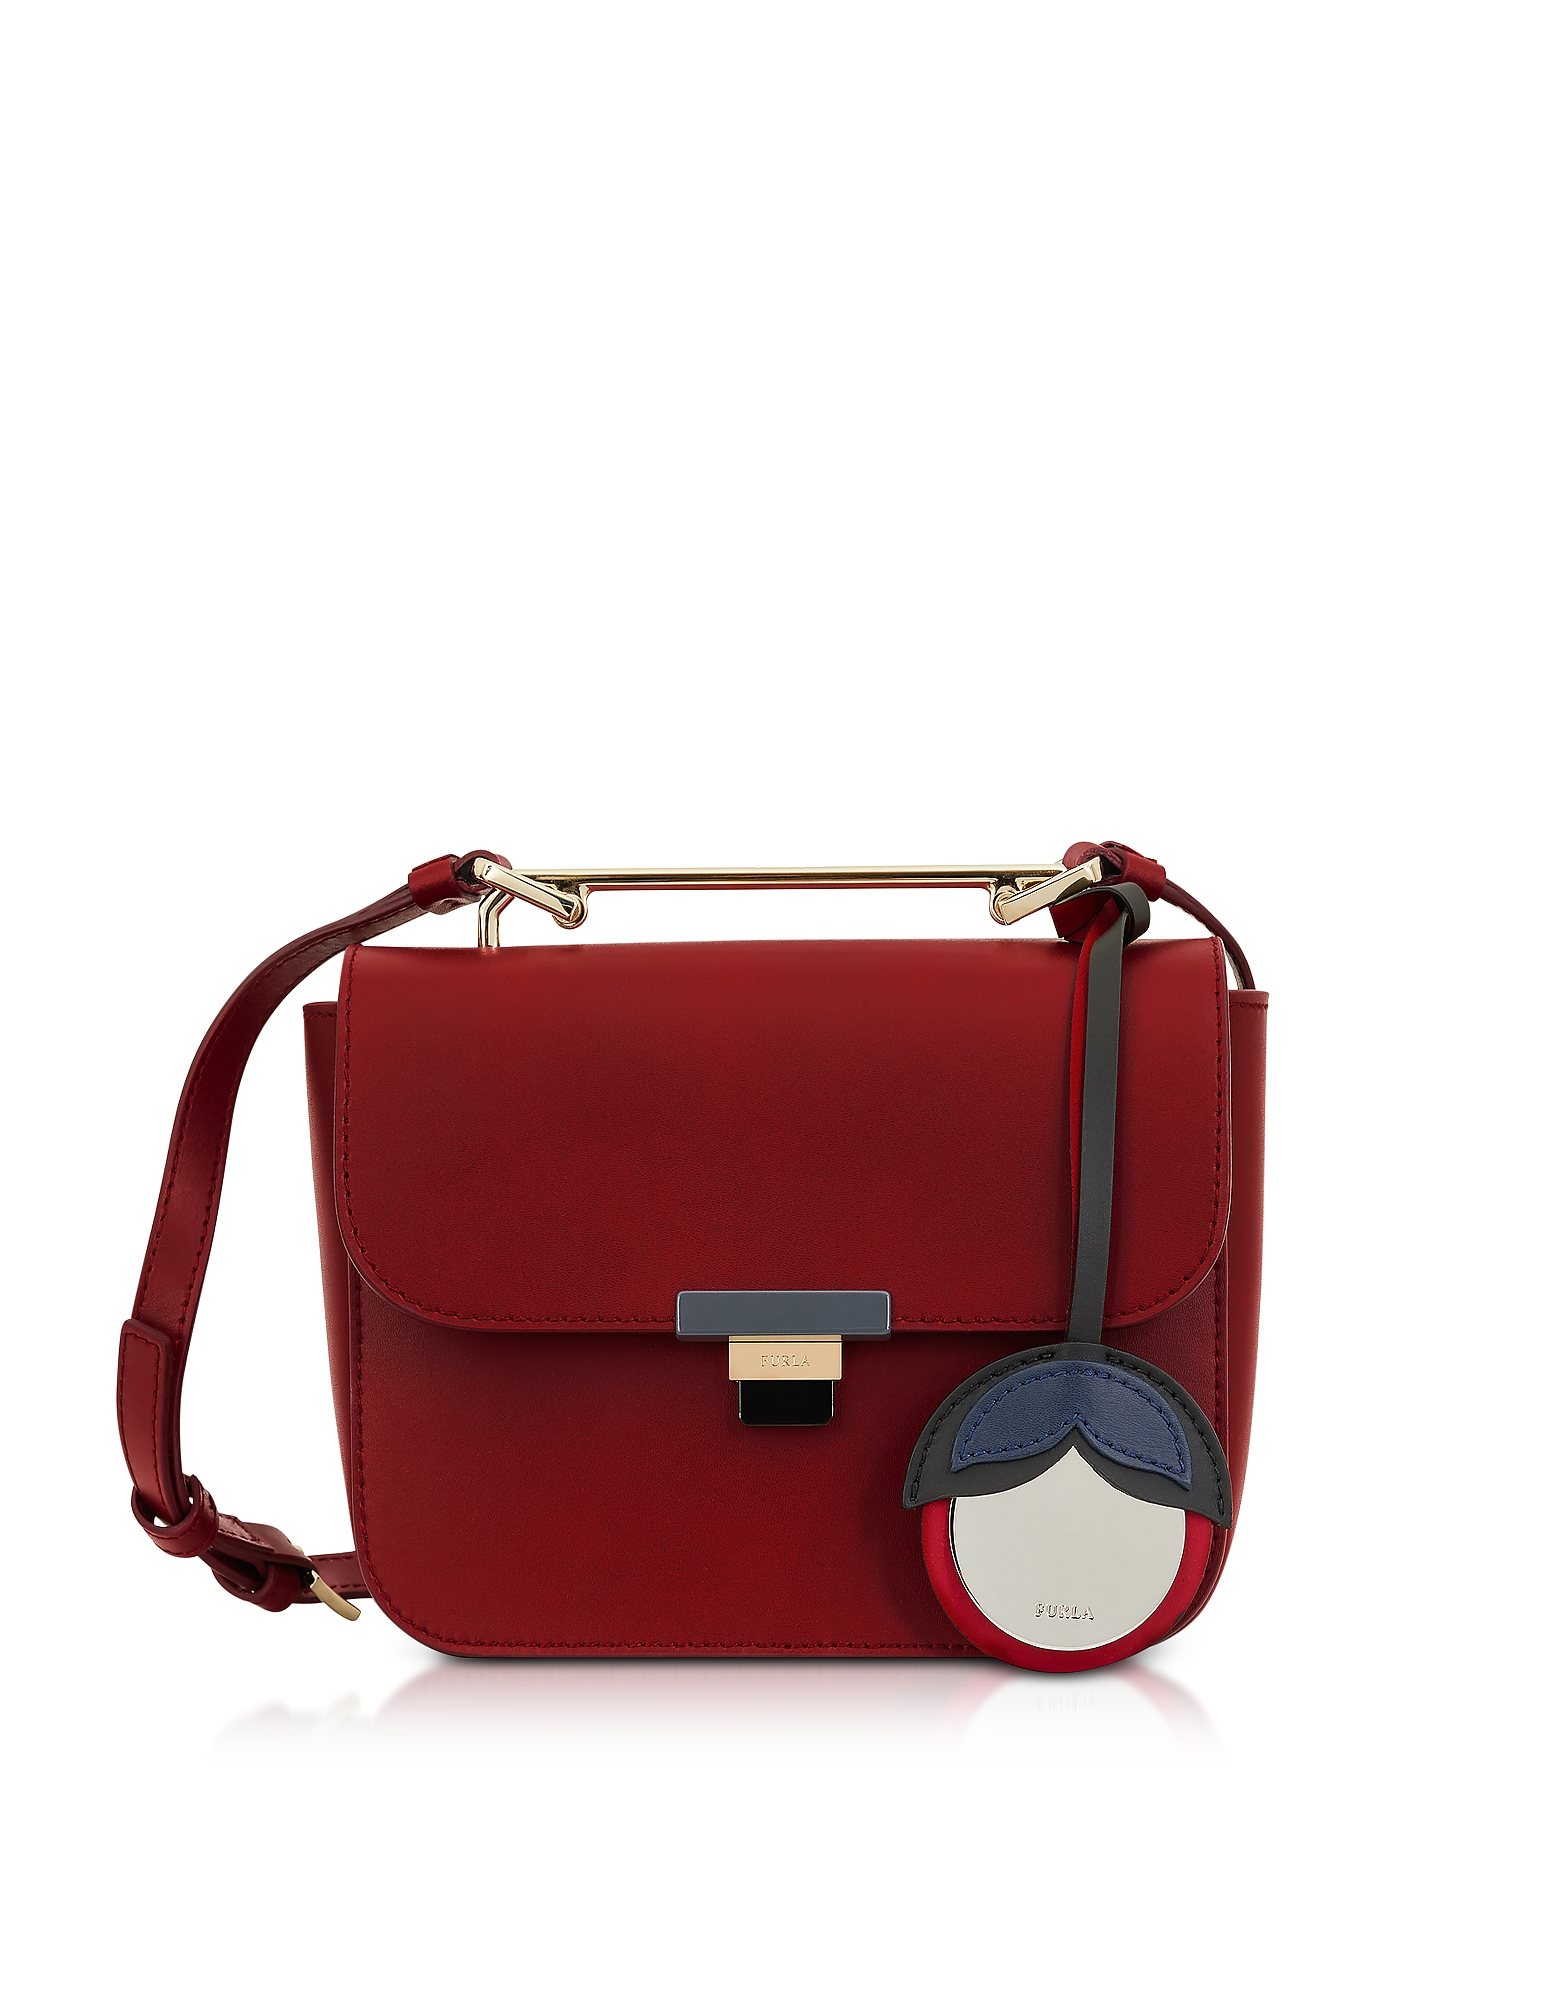 Furla Handbags, Cherry Leather Elisir Mini Crossbody Bag